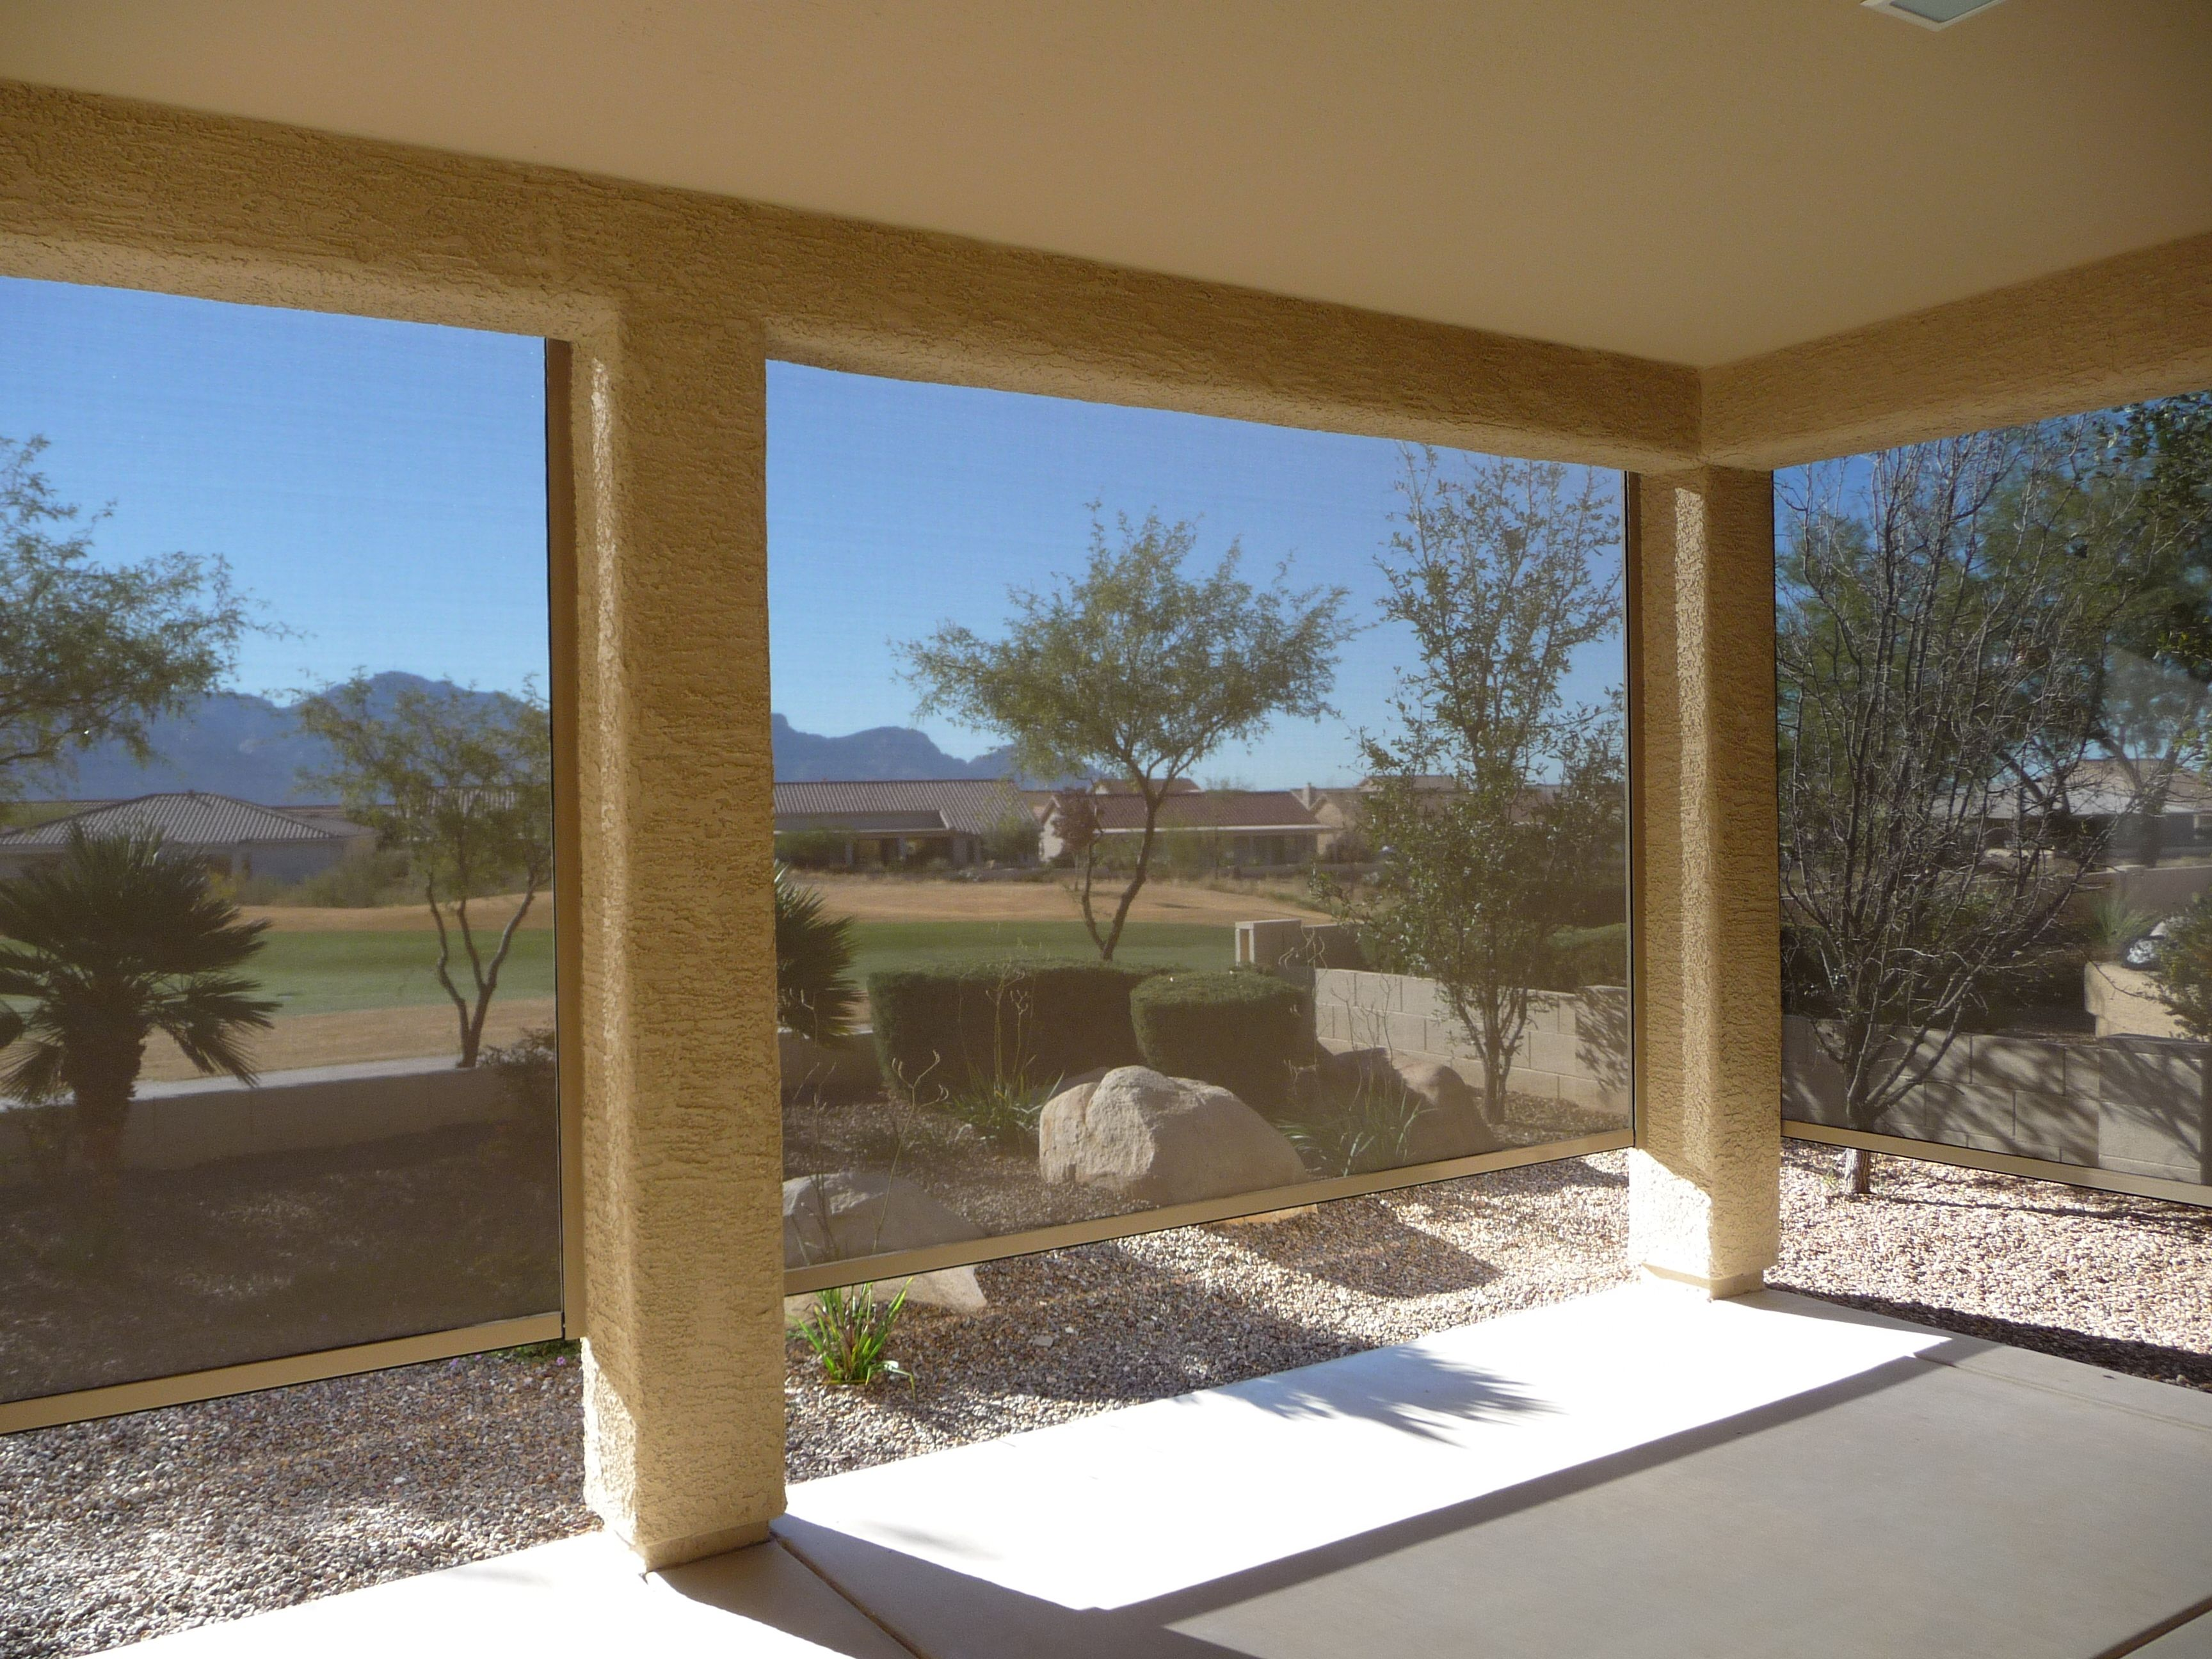 Gain security and privacy with Exterior Shades.